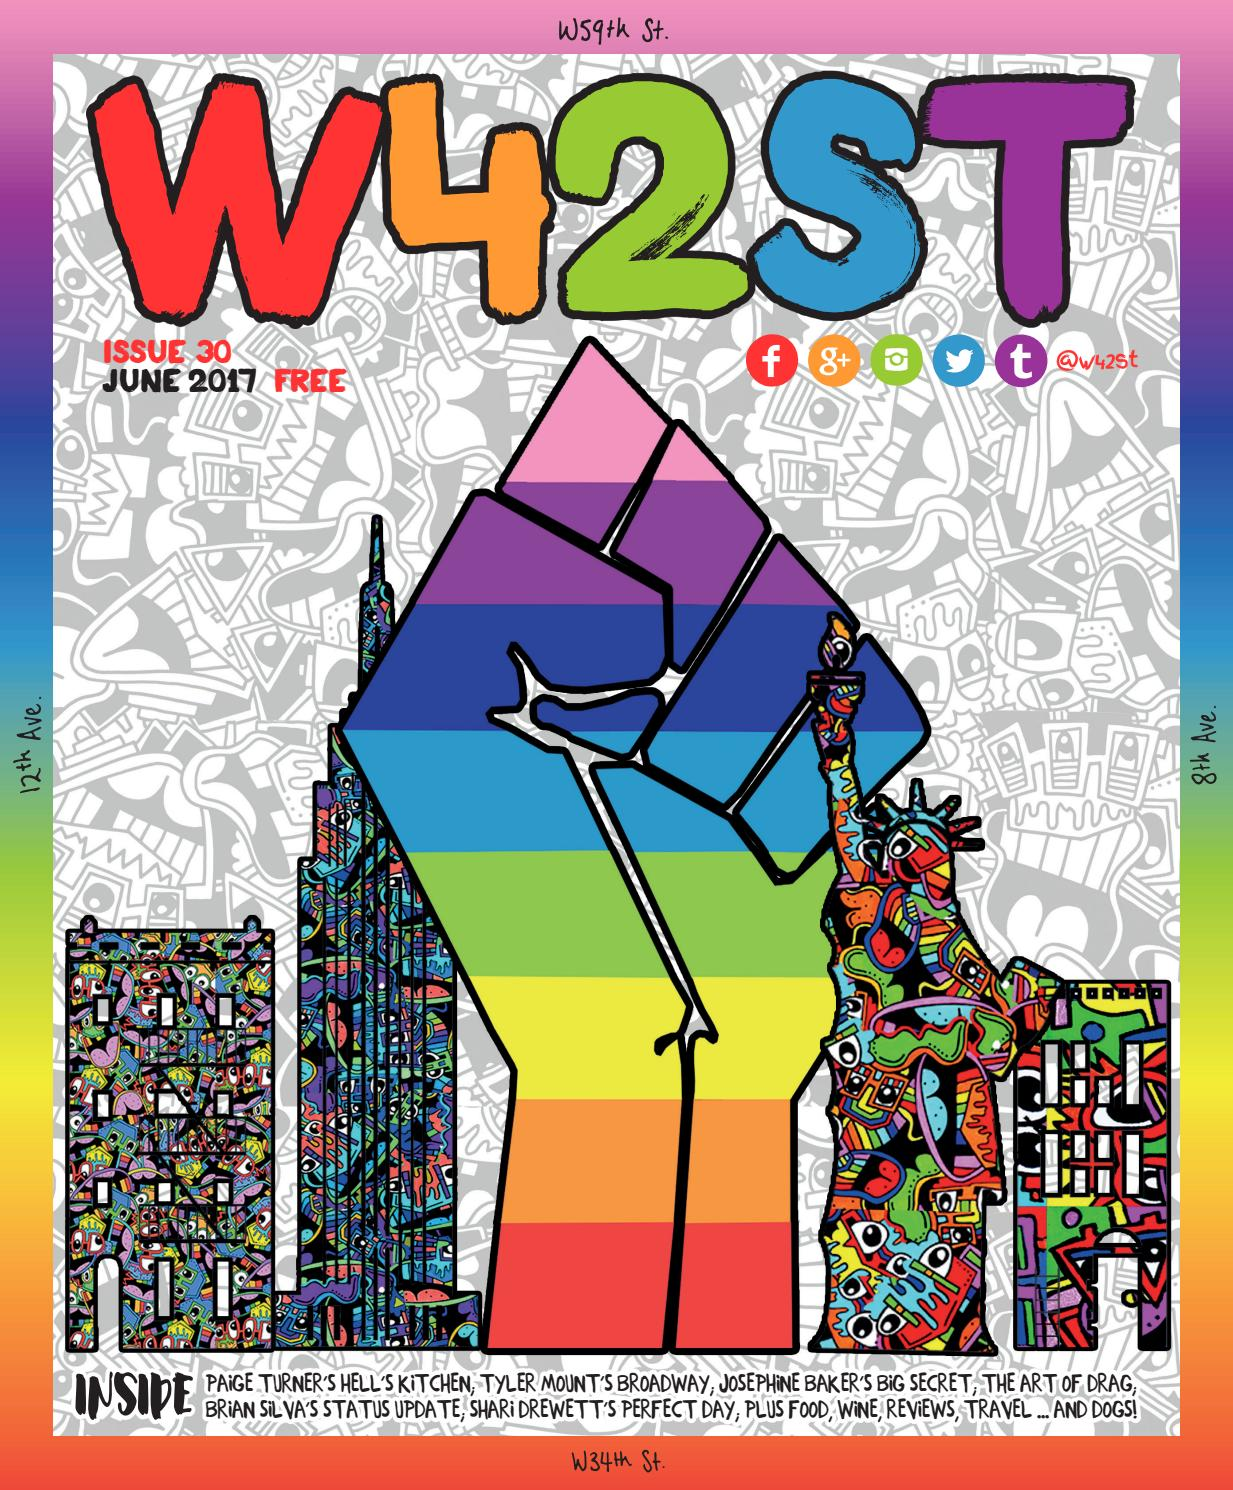 19d9683bb62 W42ST Issue 30 - we re all about Pride by W42ST Magazine - issuu